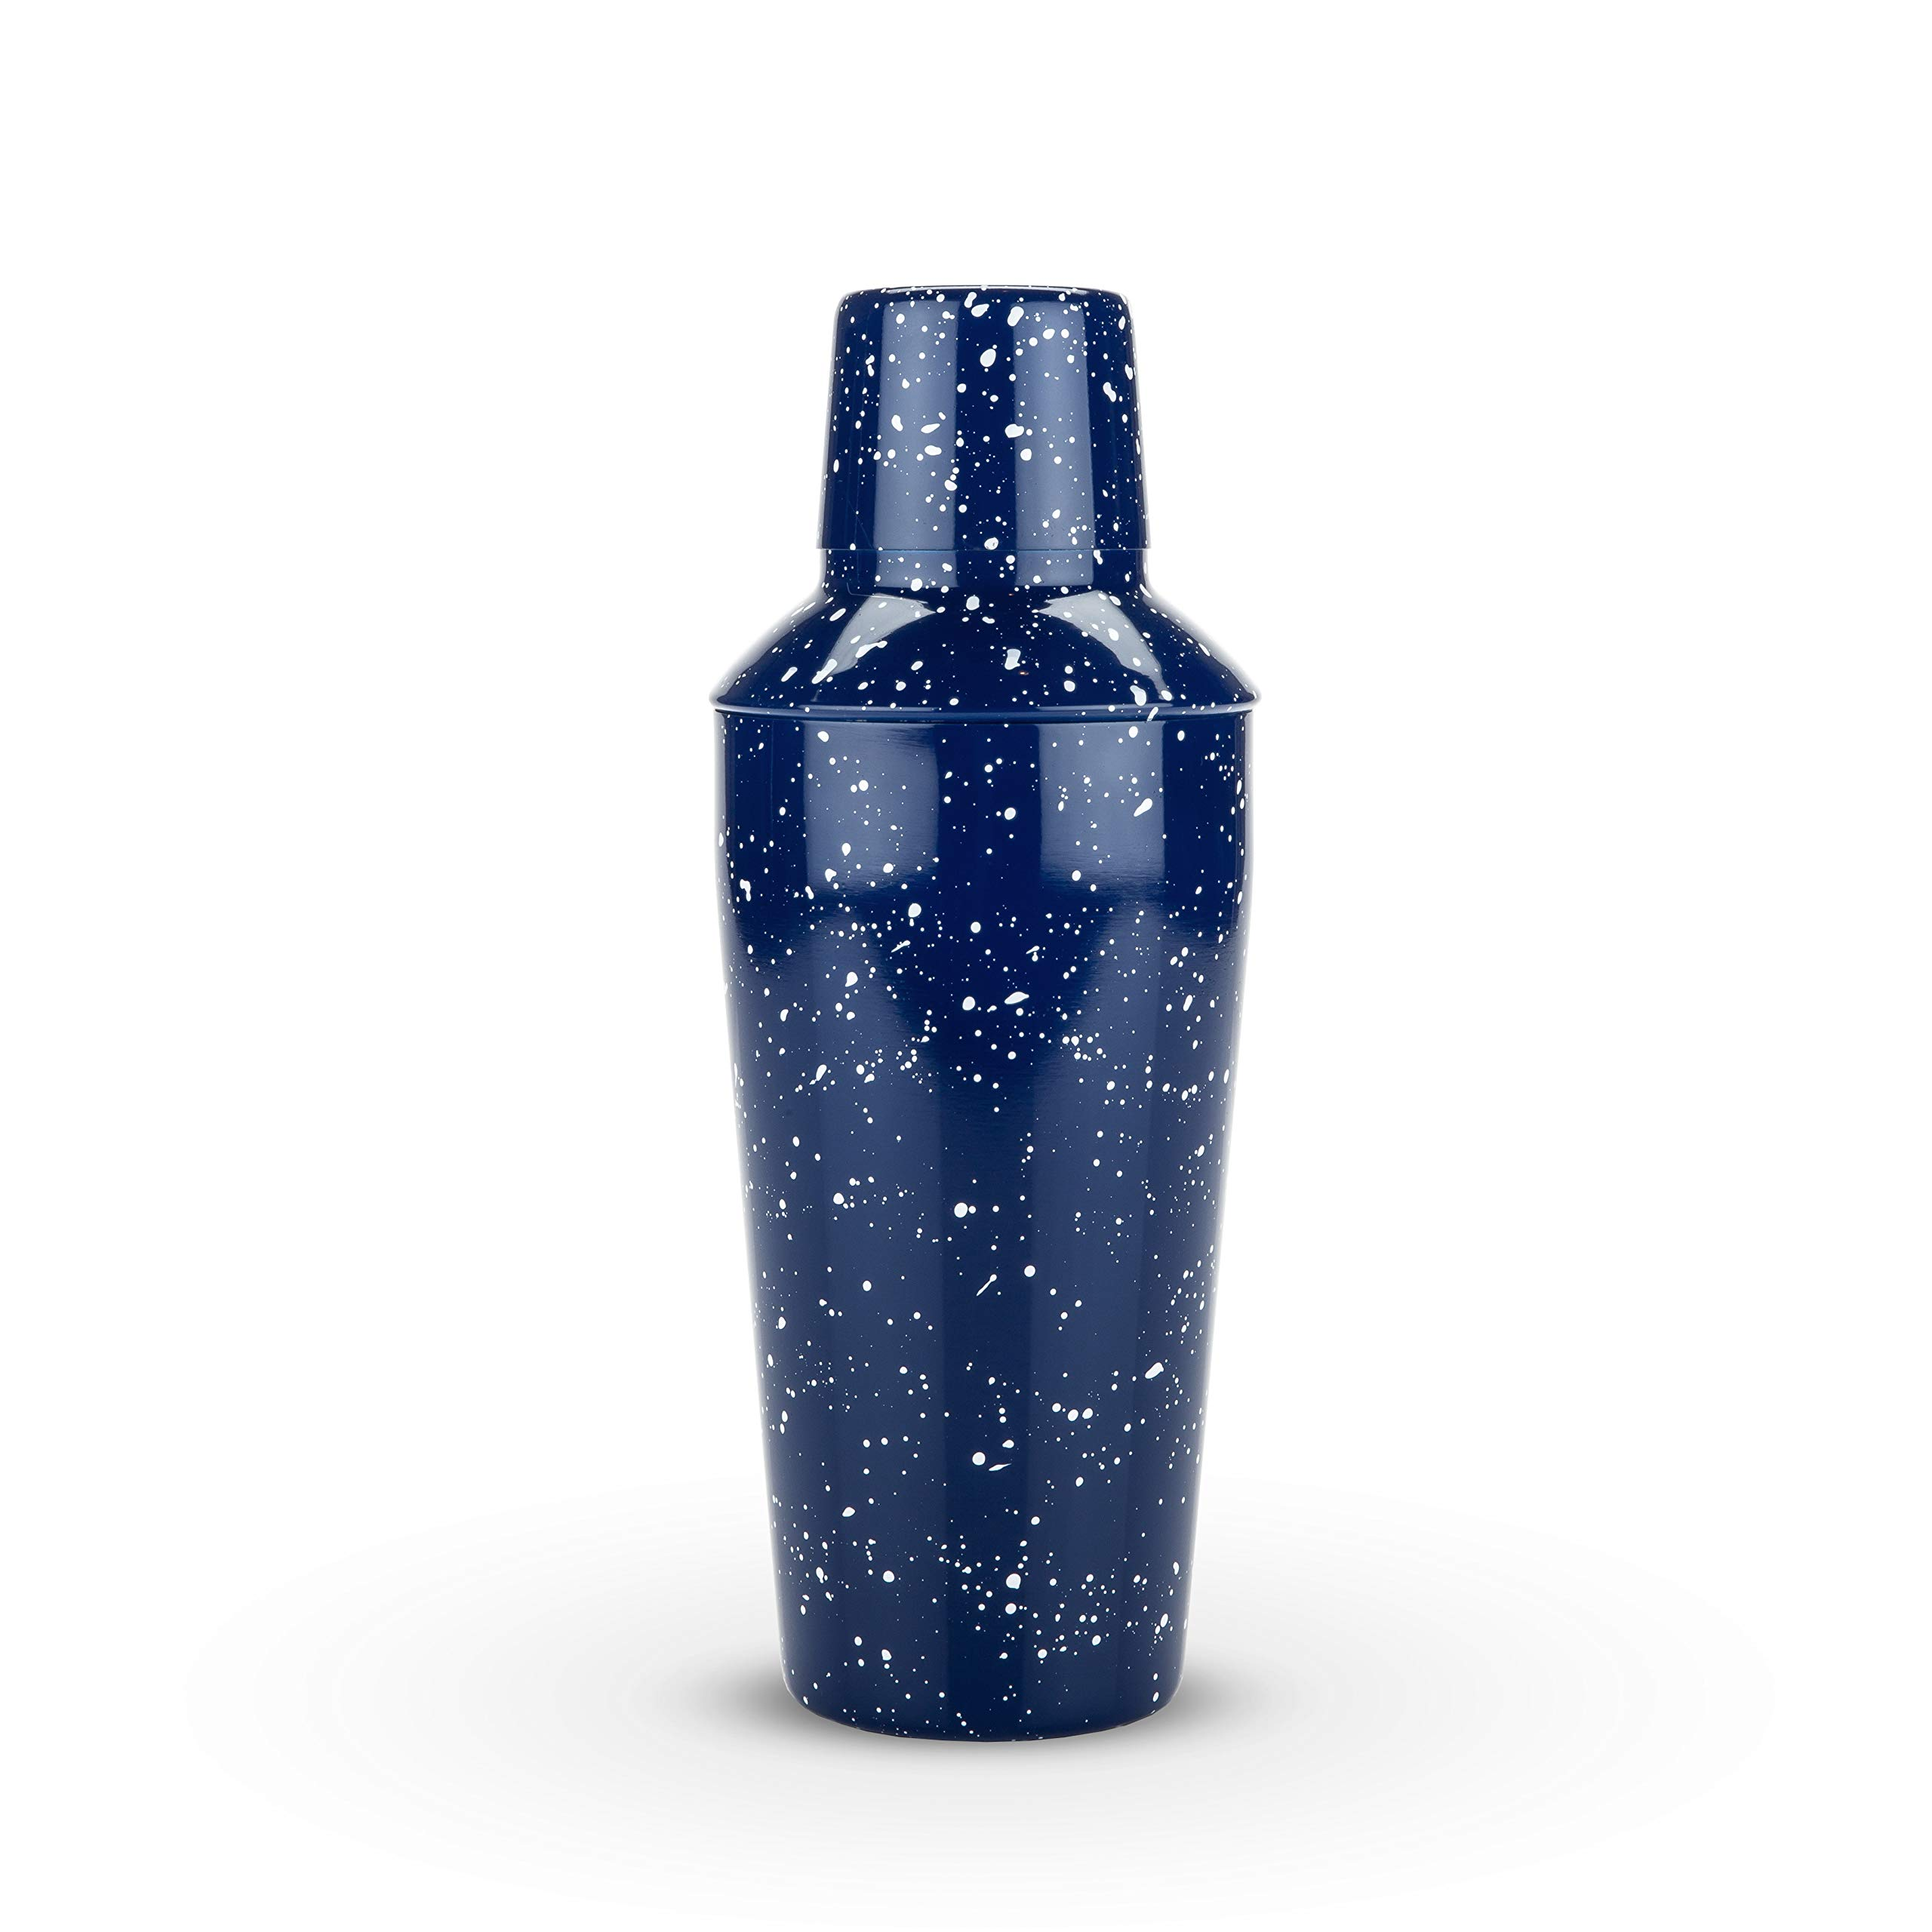 Foster & Rye 4653 Enamel Cocktail Shaker and Jigger Set, Blue by Foster & Rye